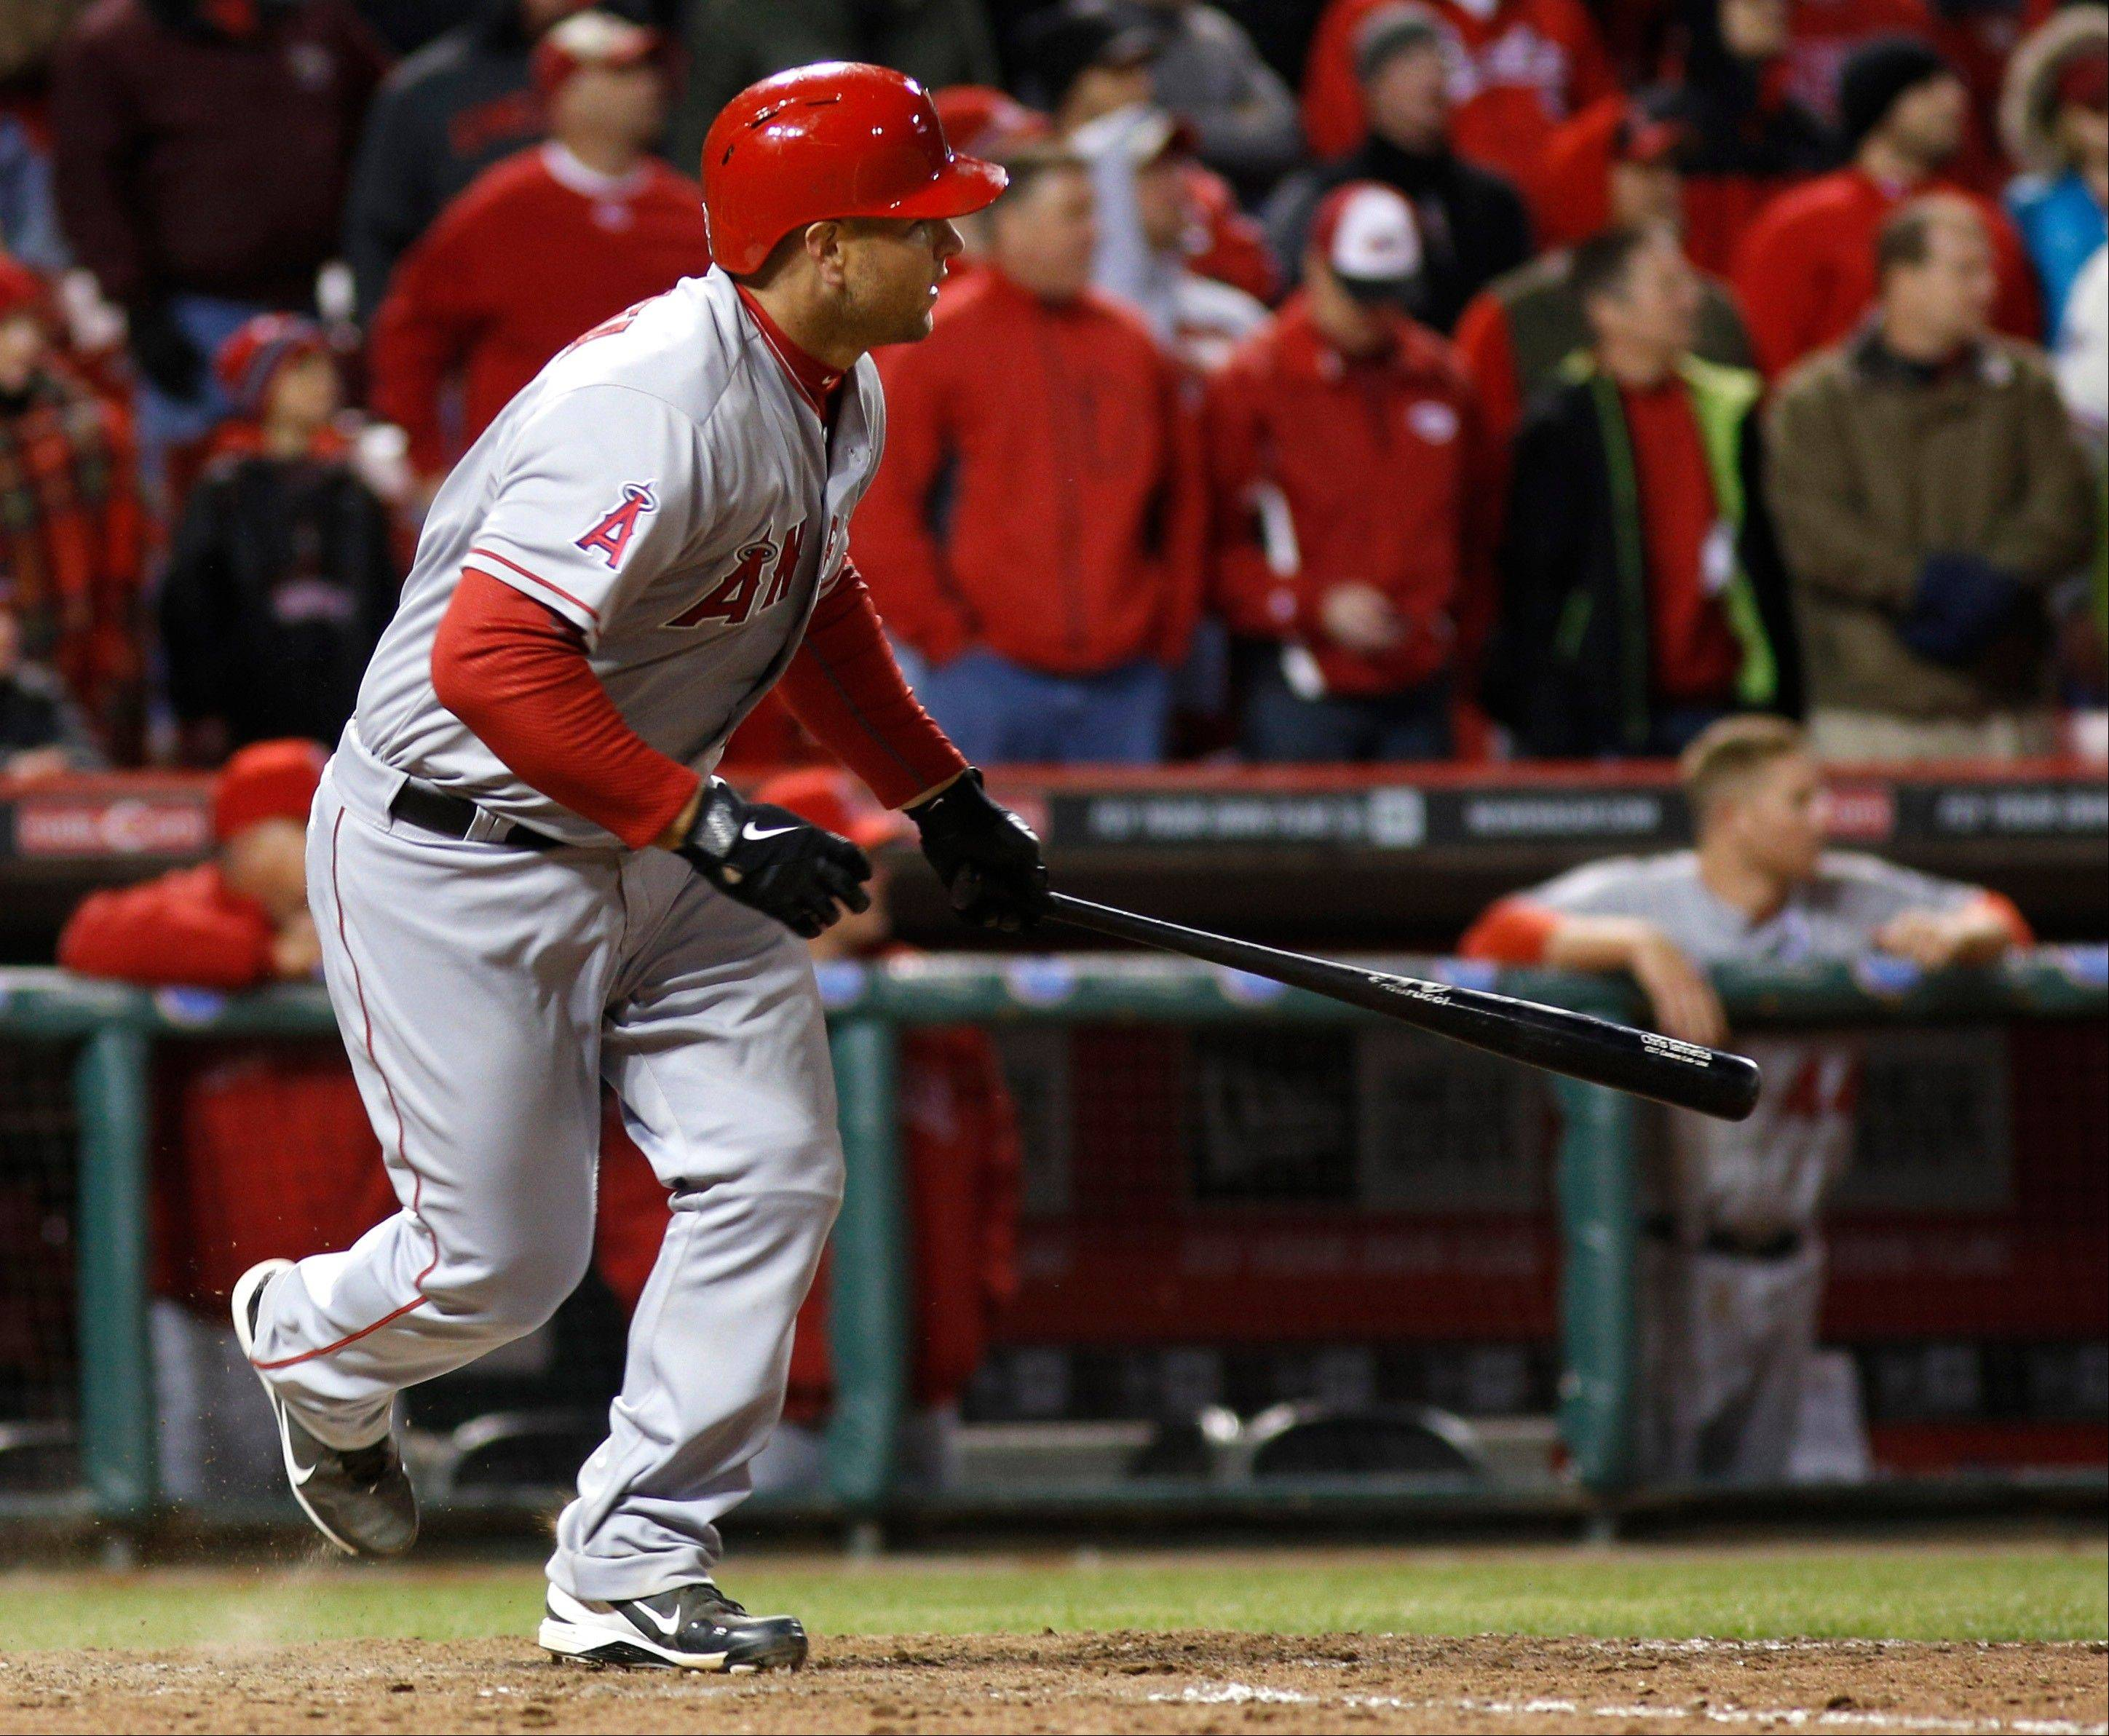 Iannetta's hit in 13th leads Angels over Reds 3-1